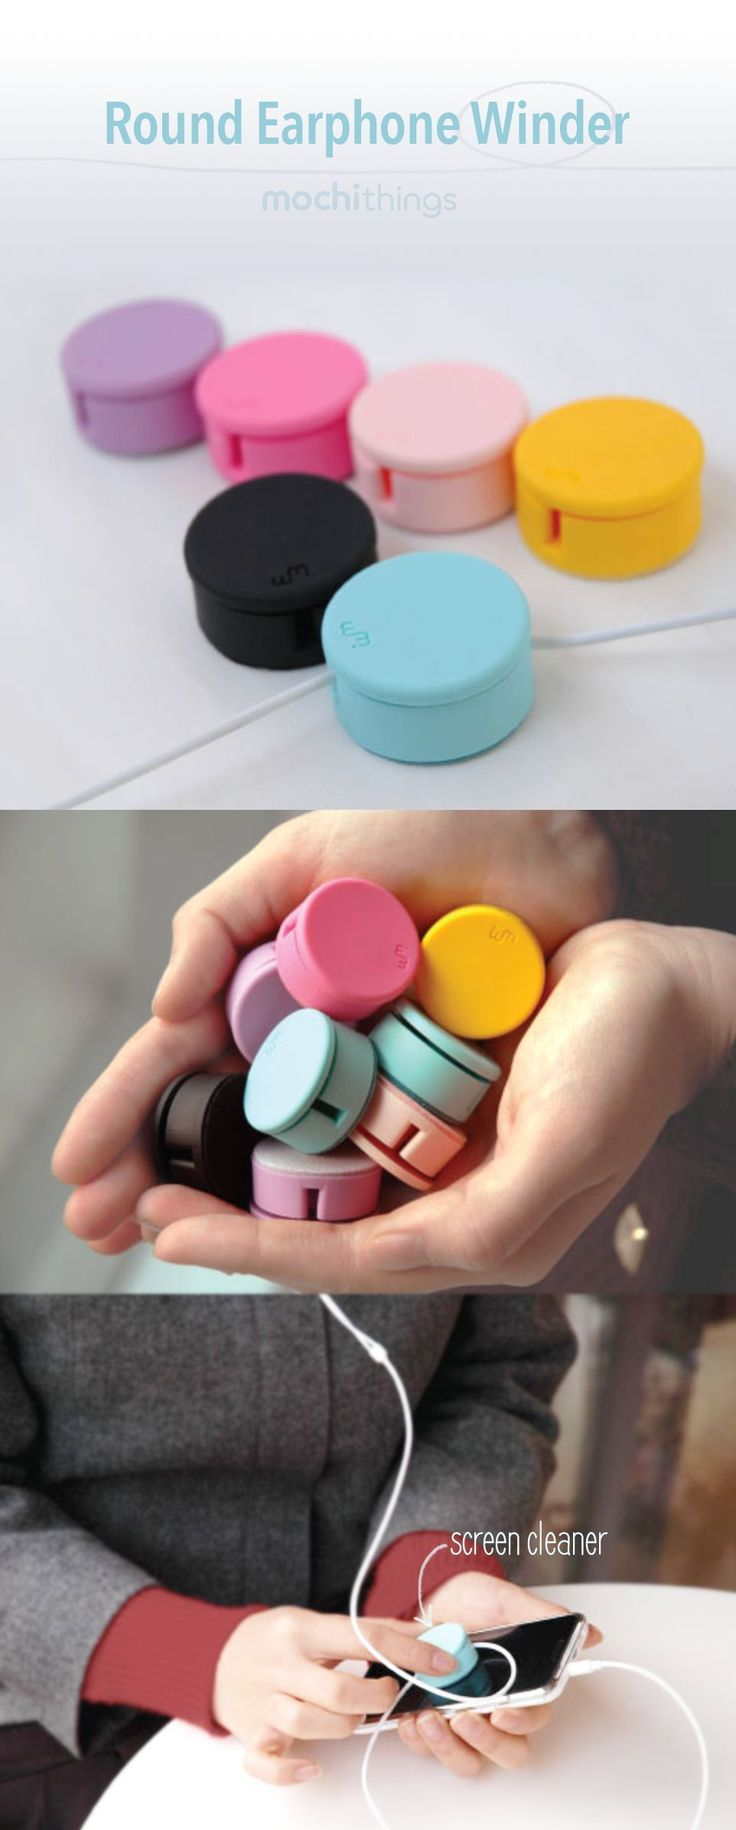 These earphone holders are as practical as they are adorable!